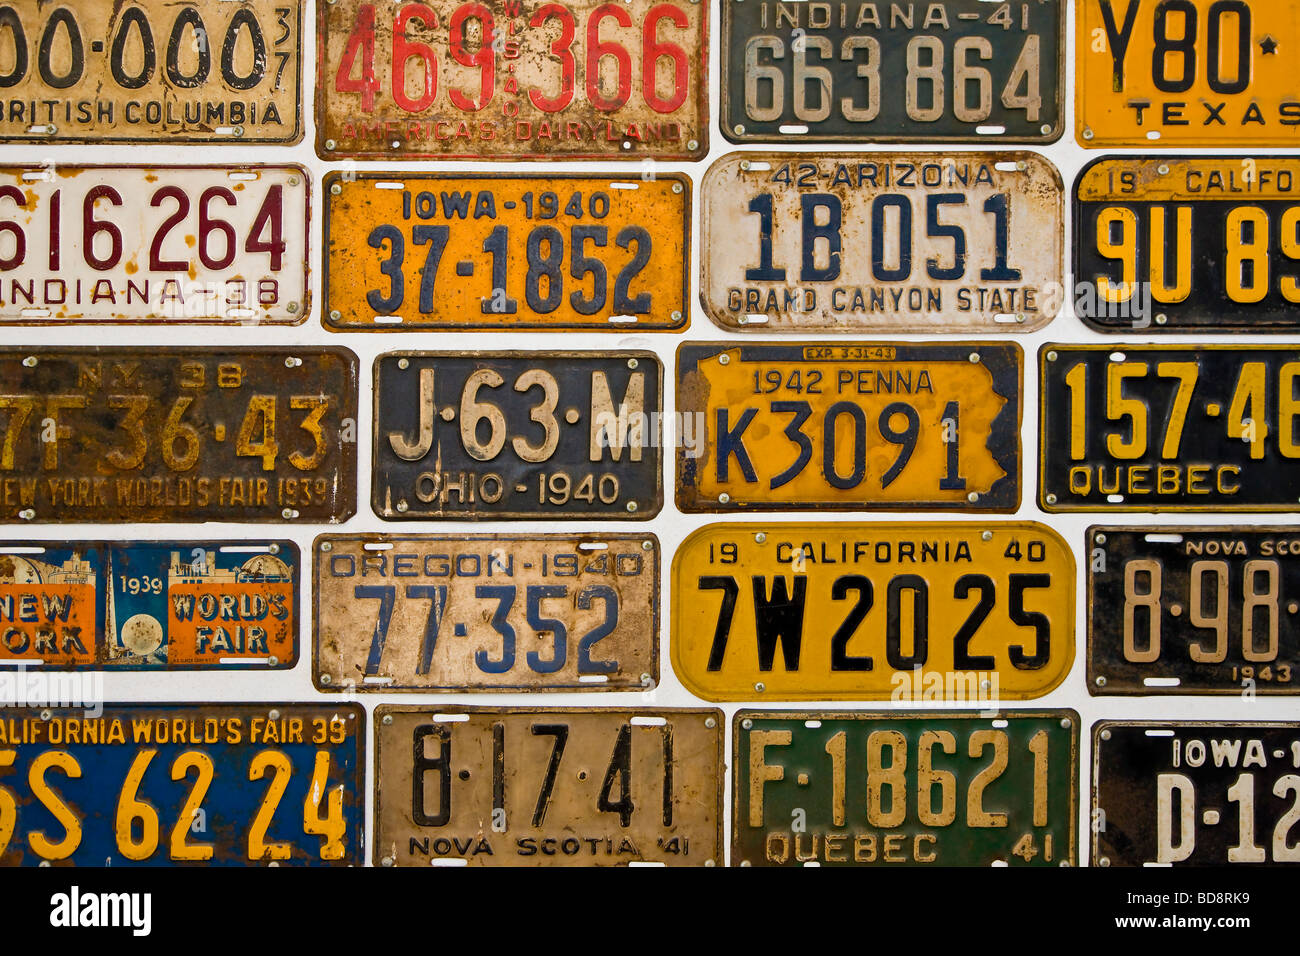 Old American number plates - Stock Image